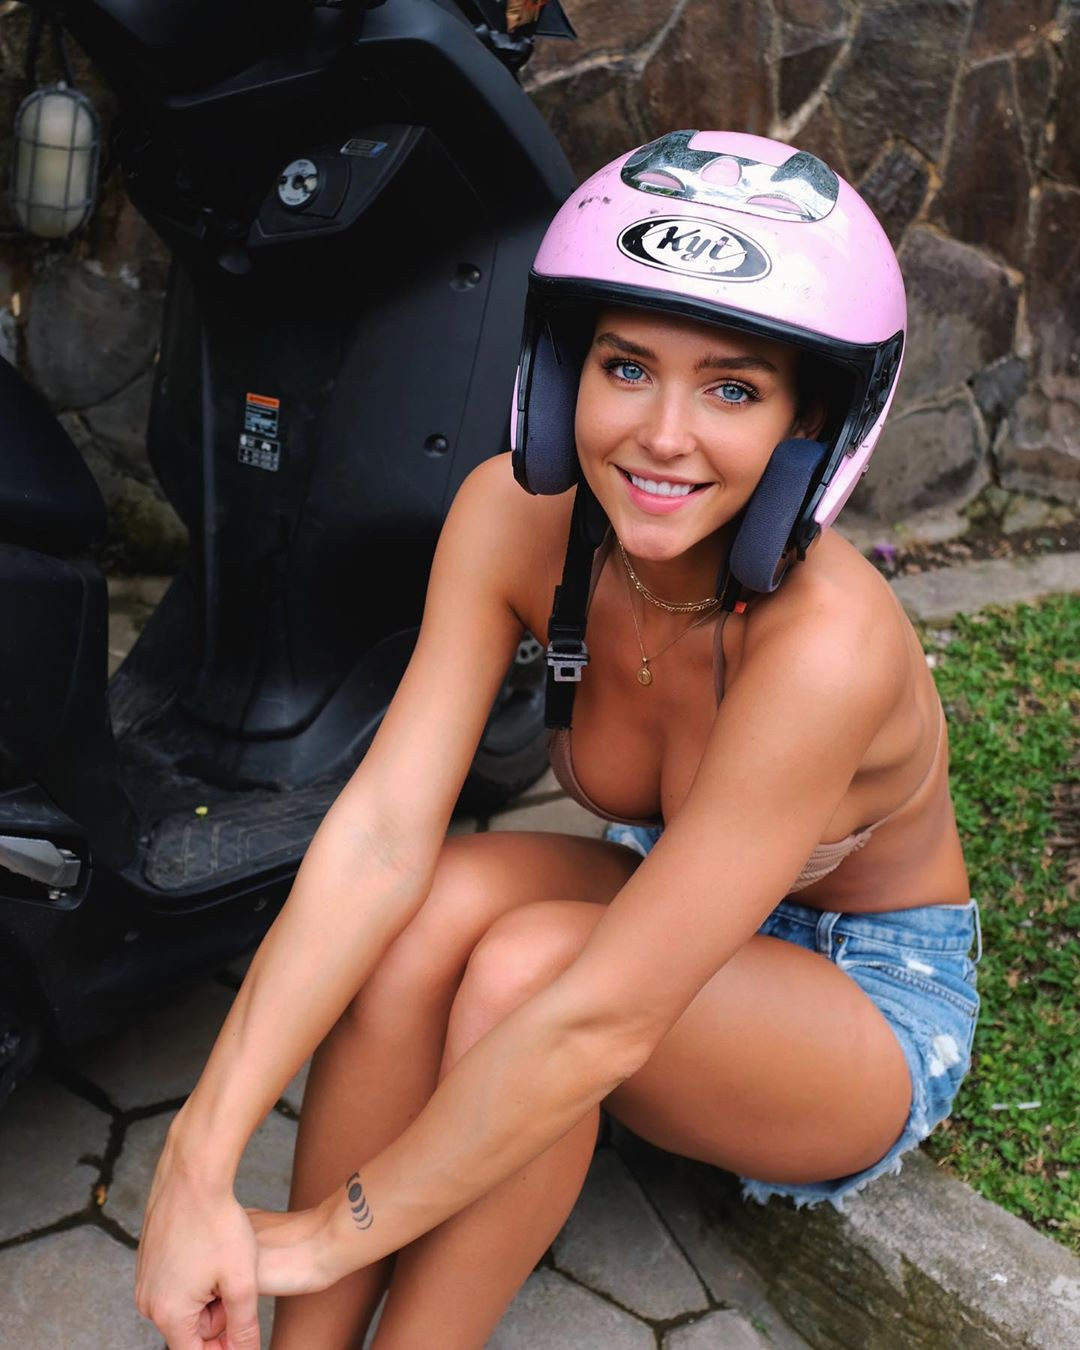 Rachel Cook female thighs, legs photo, muscle pic